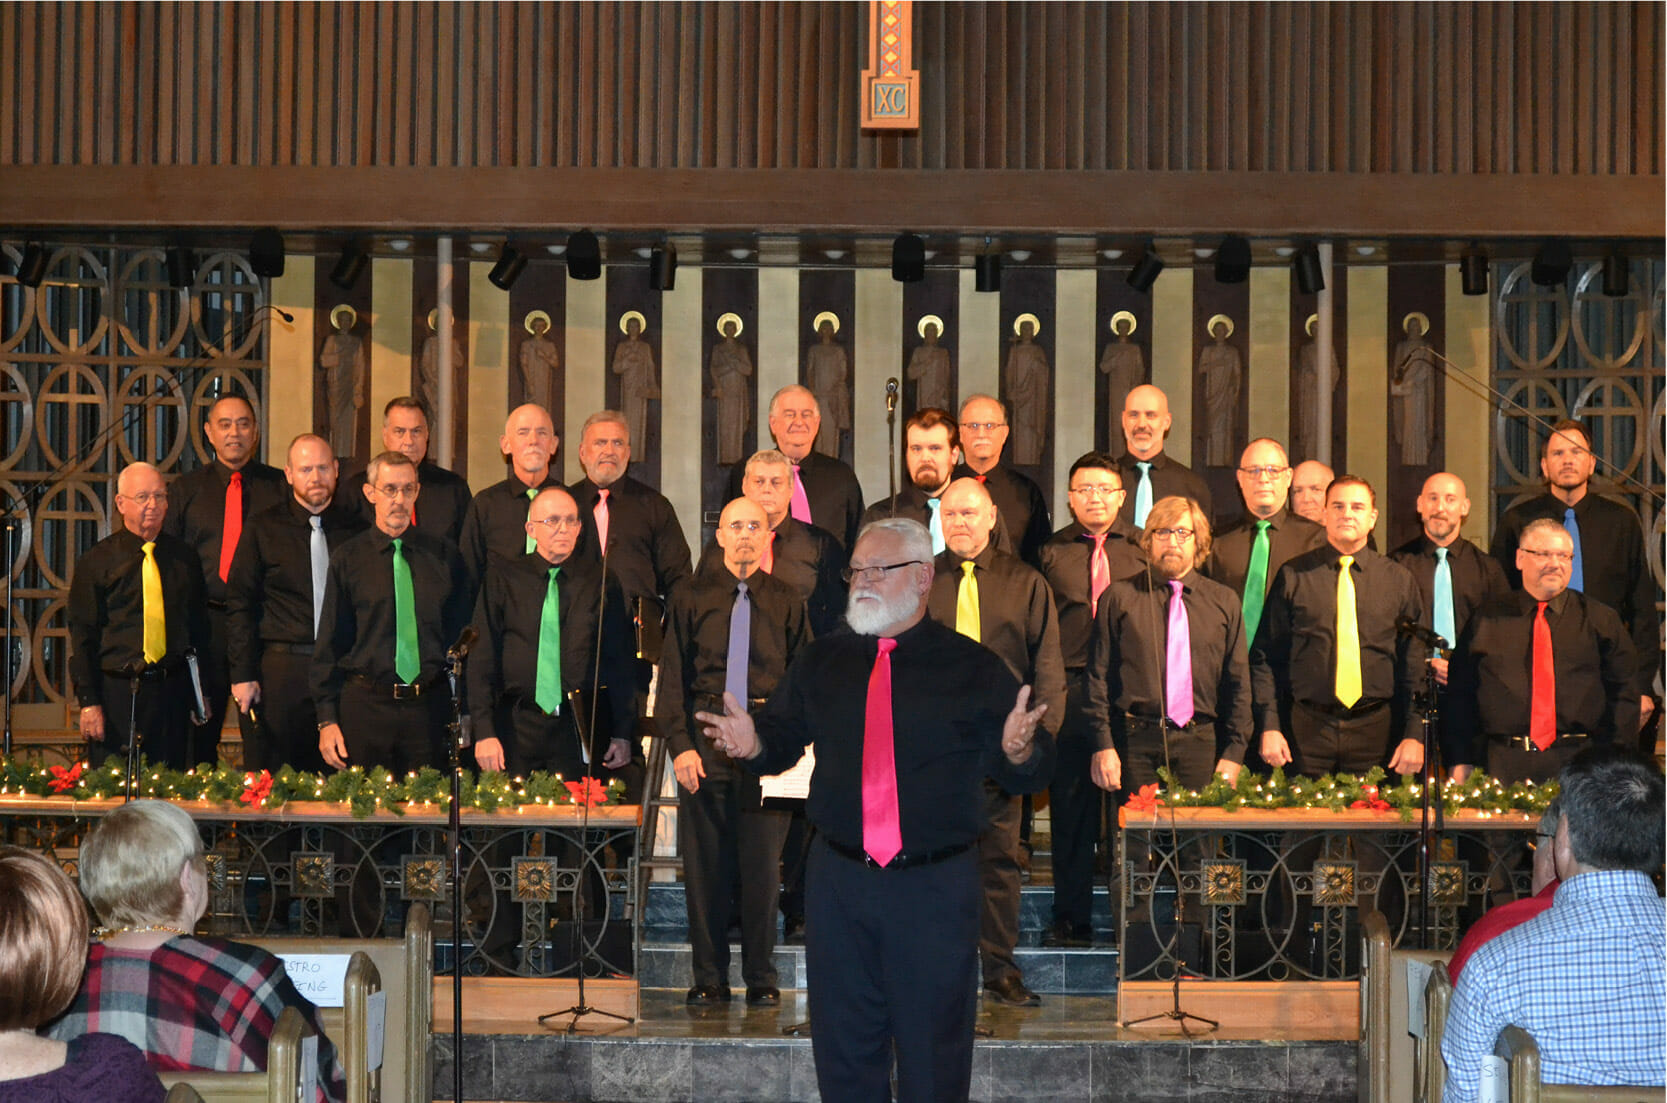 You are currently viewing Fort Lauderdale Gay Men's Chorus